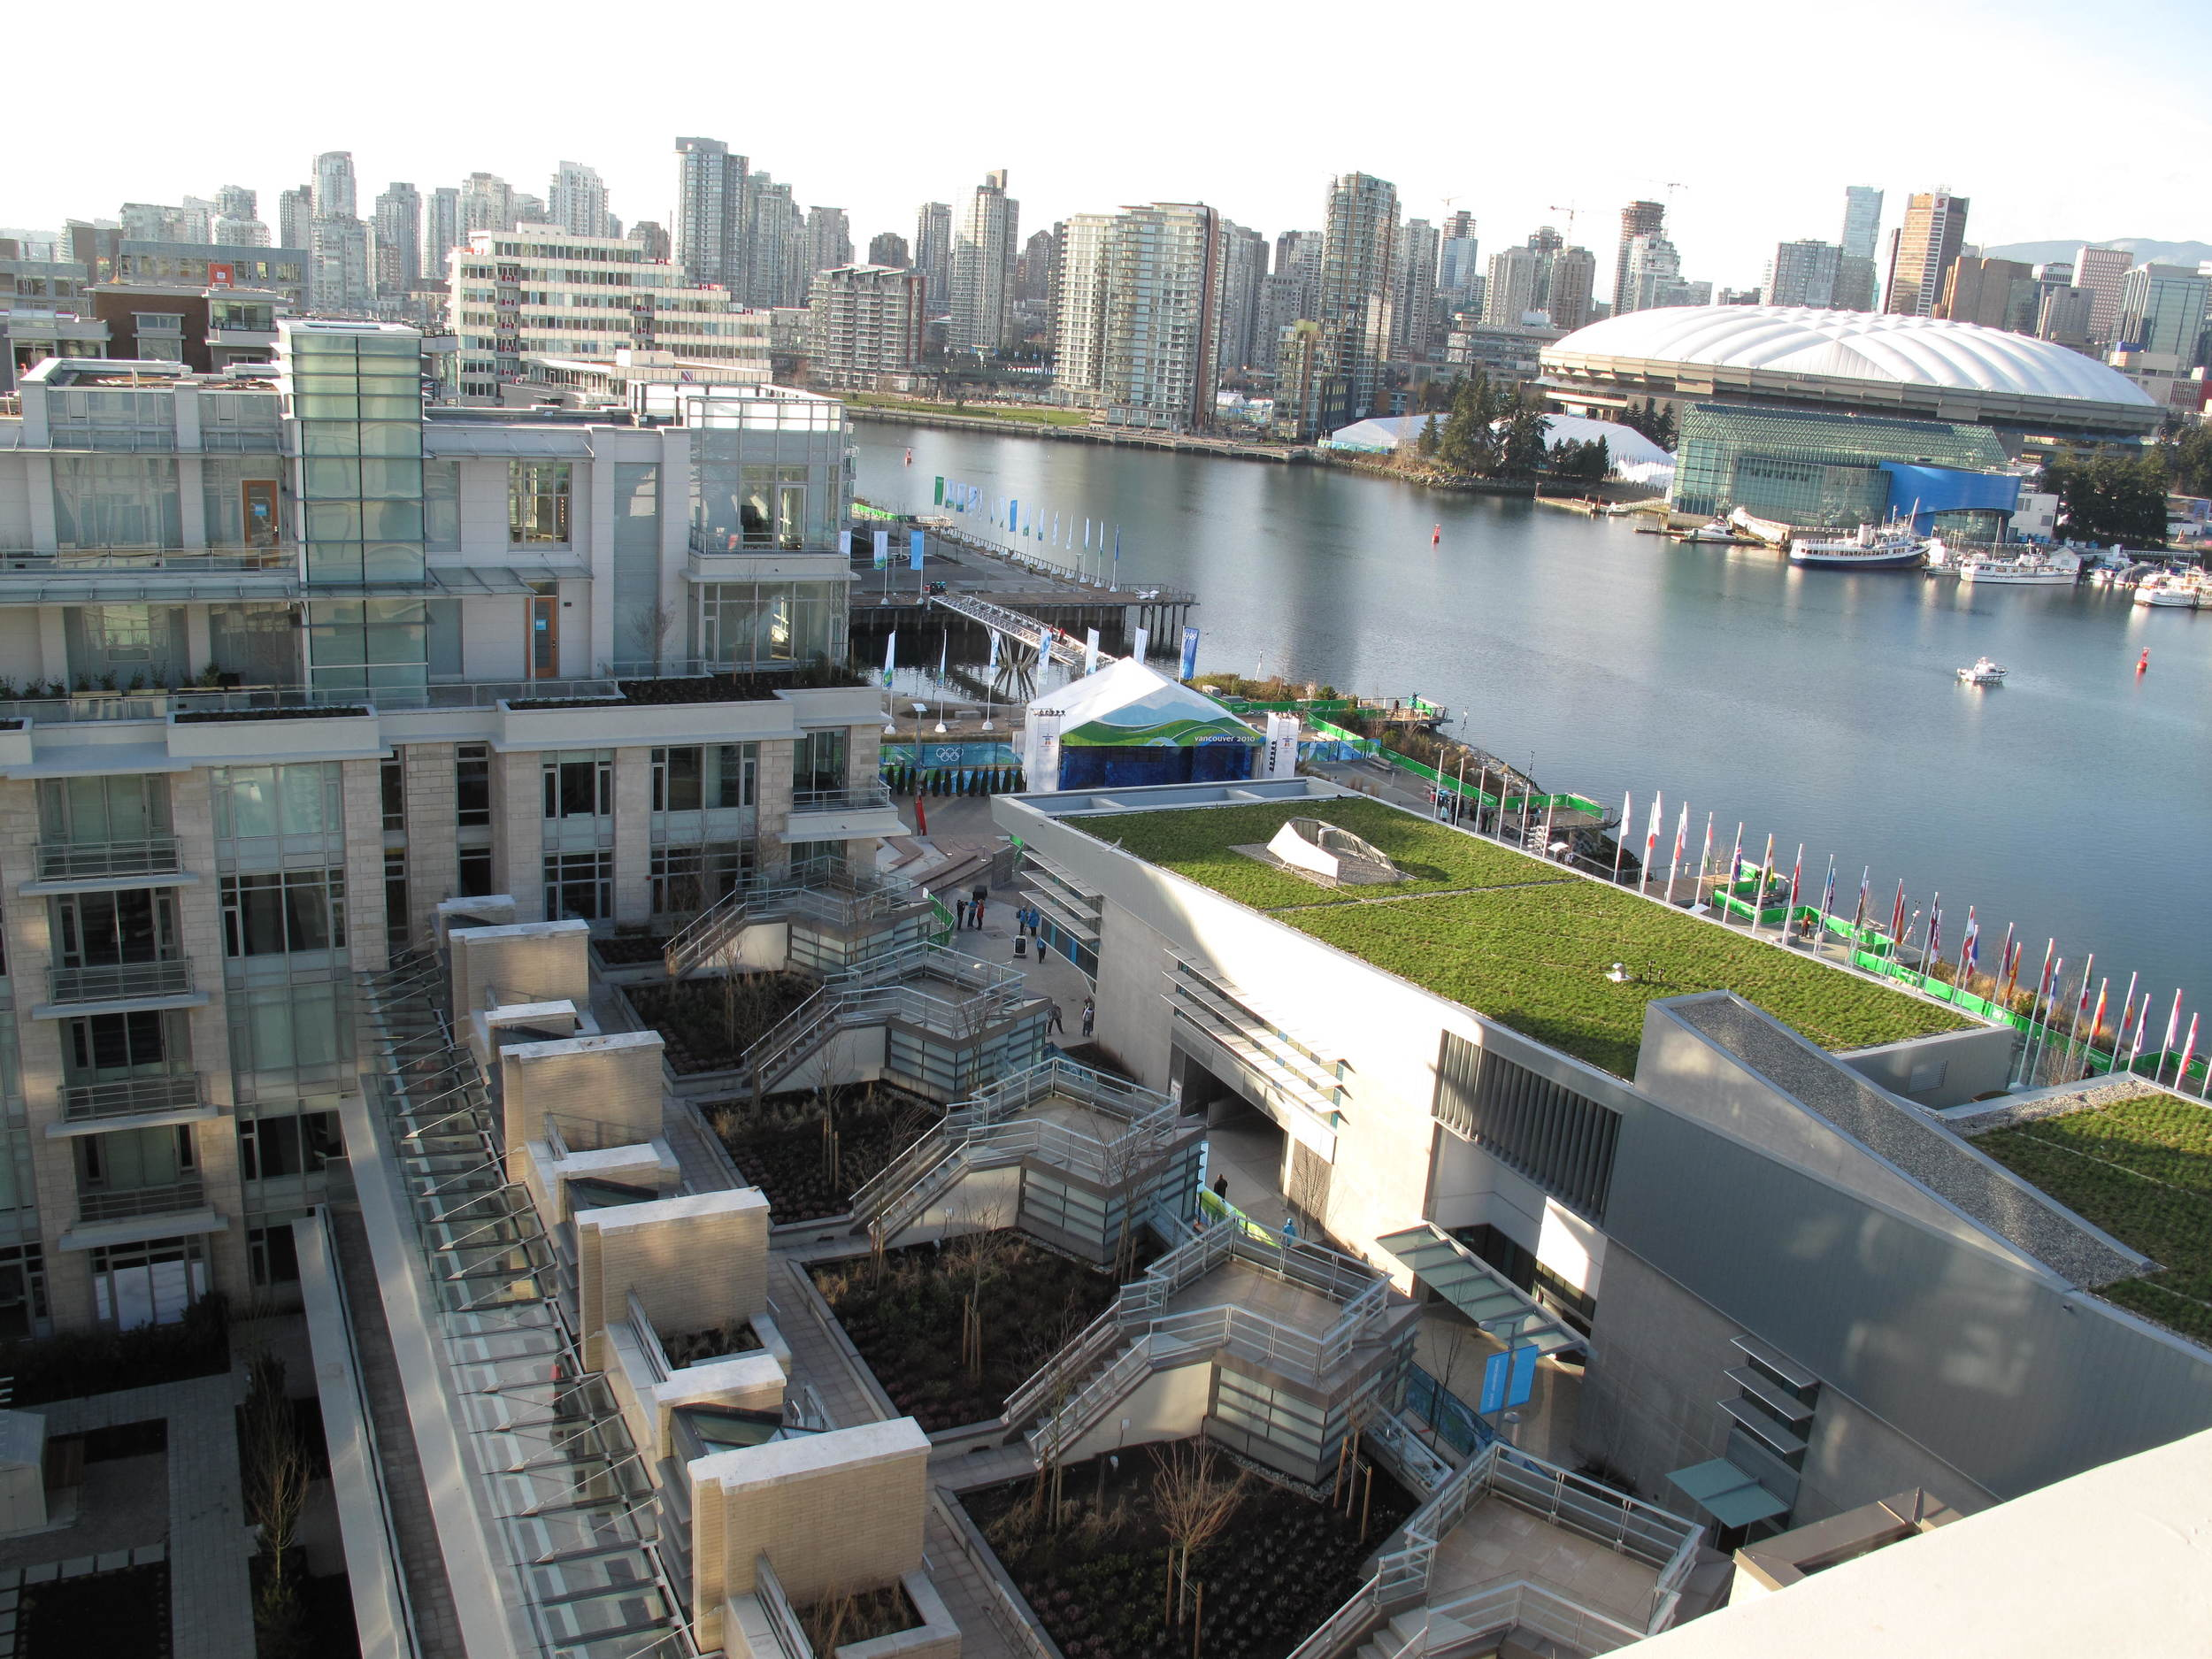 The athletes' village (with eco-designed green roof) is now an under-occupied condo complex.